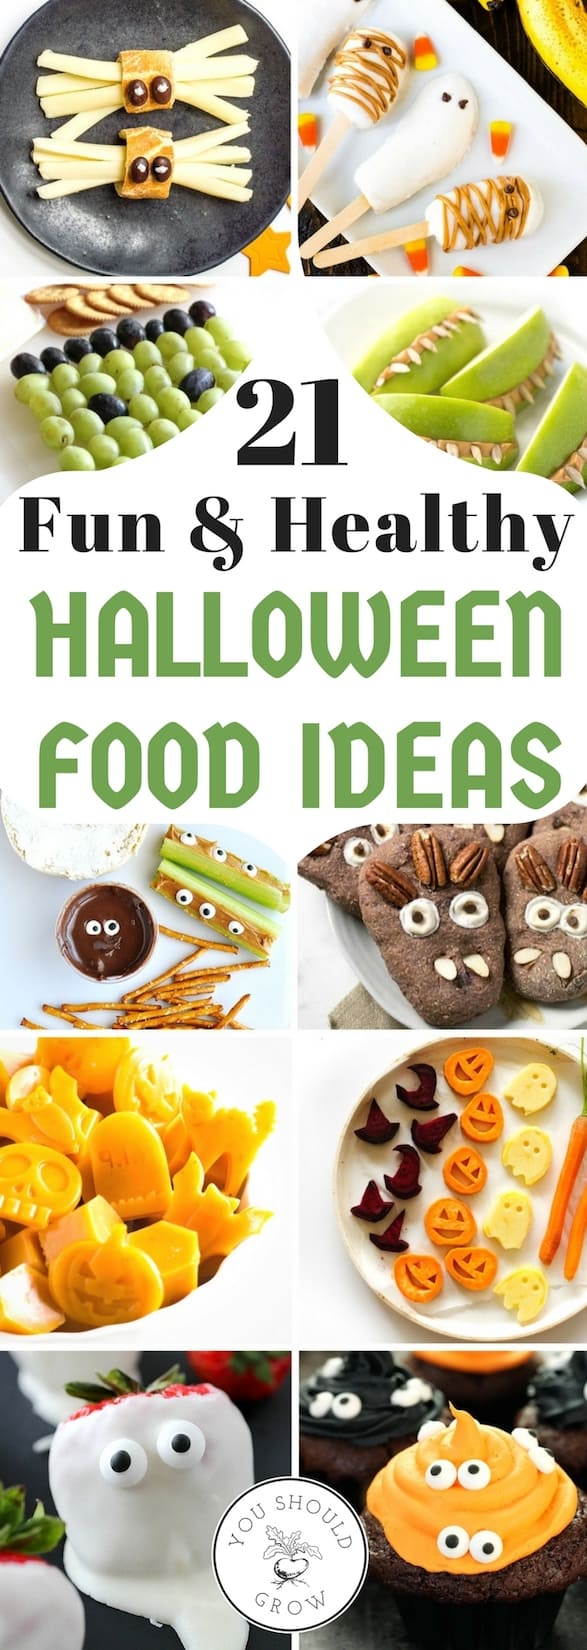 Searching for healthy Halloween food ideas? If you're like most moms, you're worried about all the sugary foods your kids get for Halloween. Feed your family only the best ingredients with these real food options for Halloween treats!